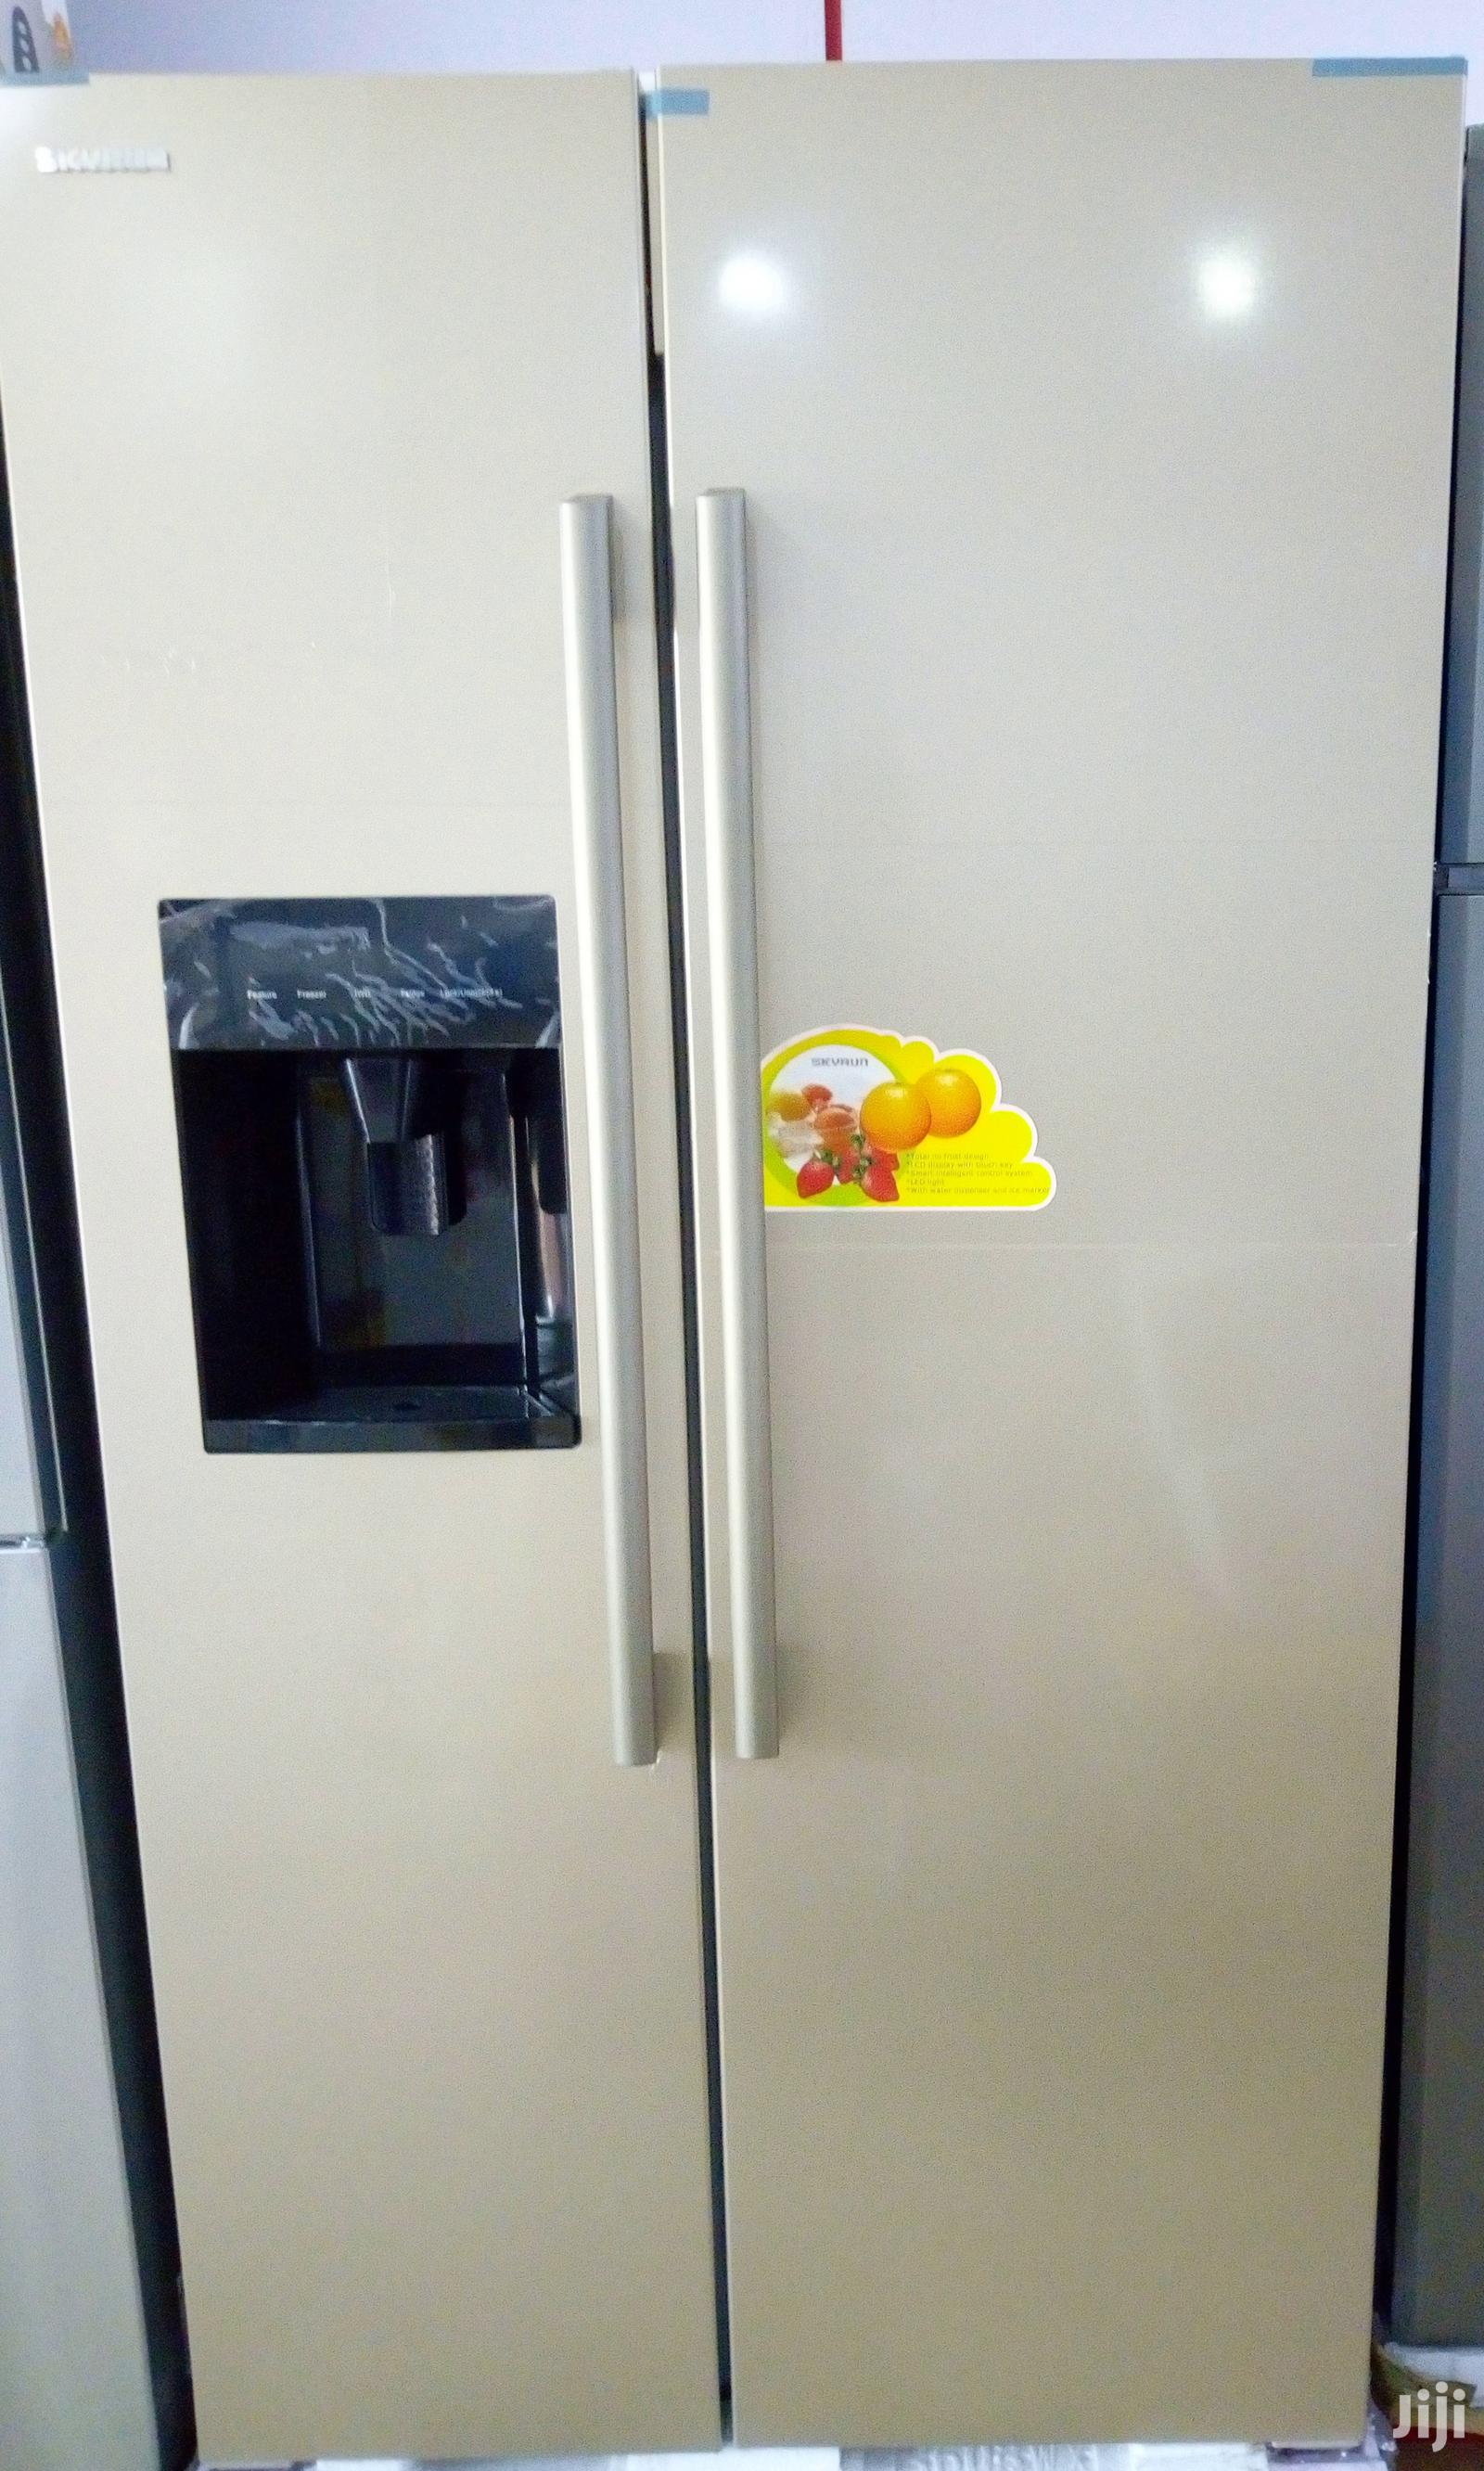 Archive: Skyrun Side By Side Refrigerator With Ice Maker And Dispenser